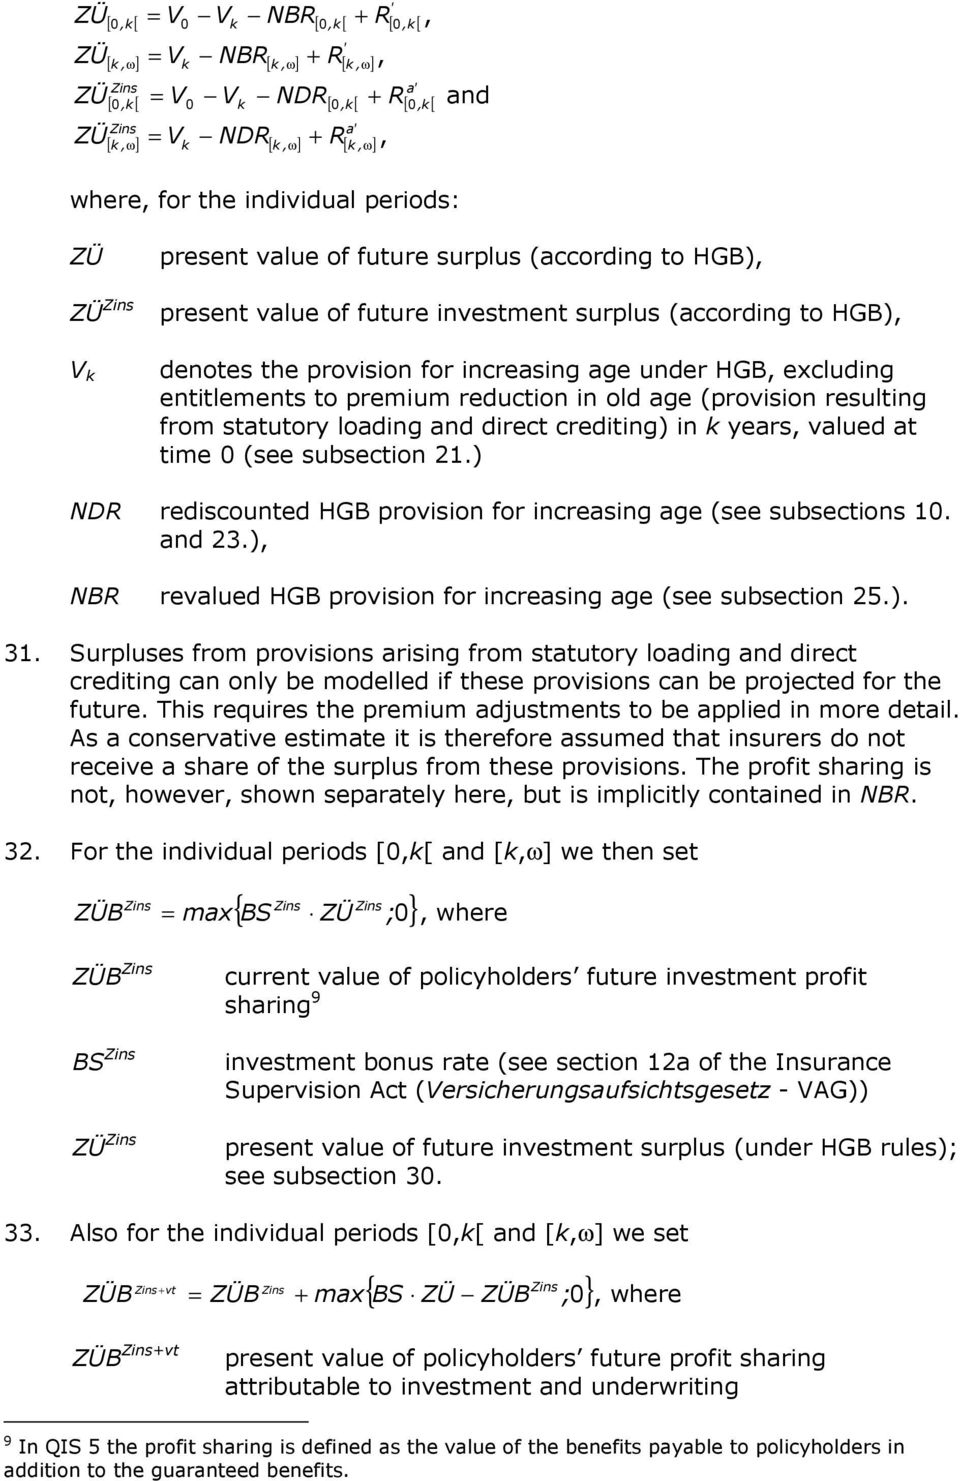 reducion in old age (provision resuling from sauory loading direc crediing) in k years valued a ime 0 (see subsecion 21.) NDR rediscouned provision for increasing age (see subsecions 10. 23.